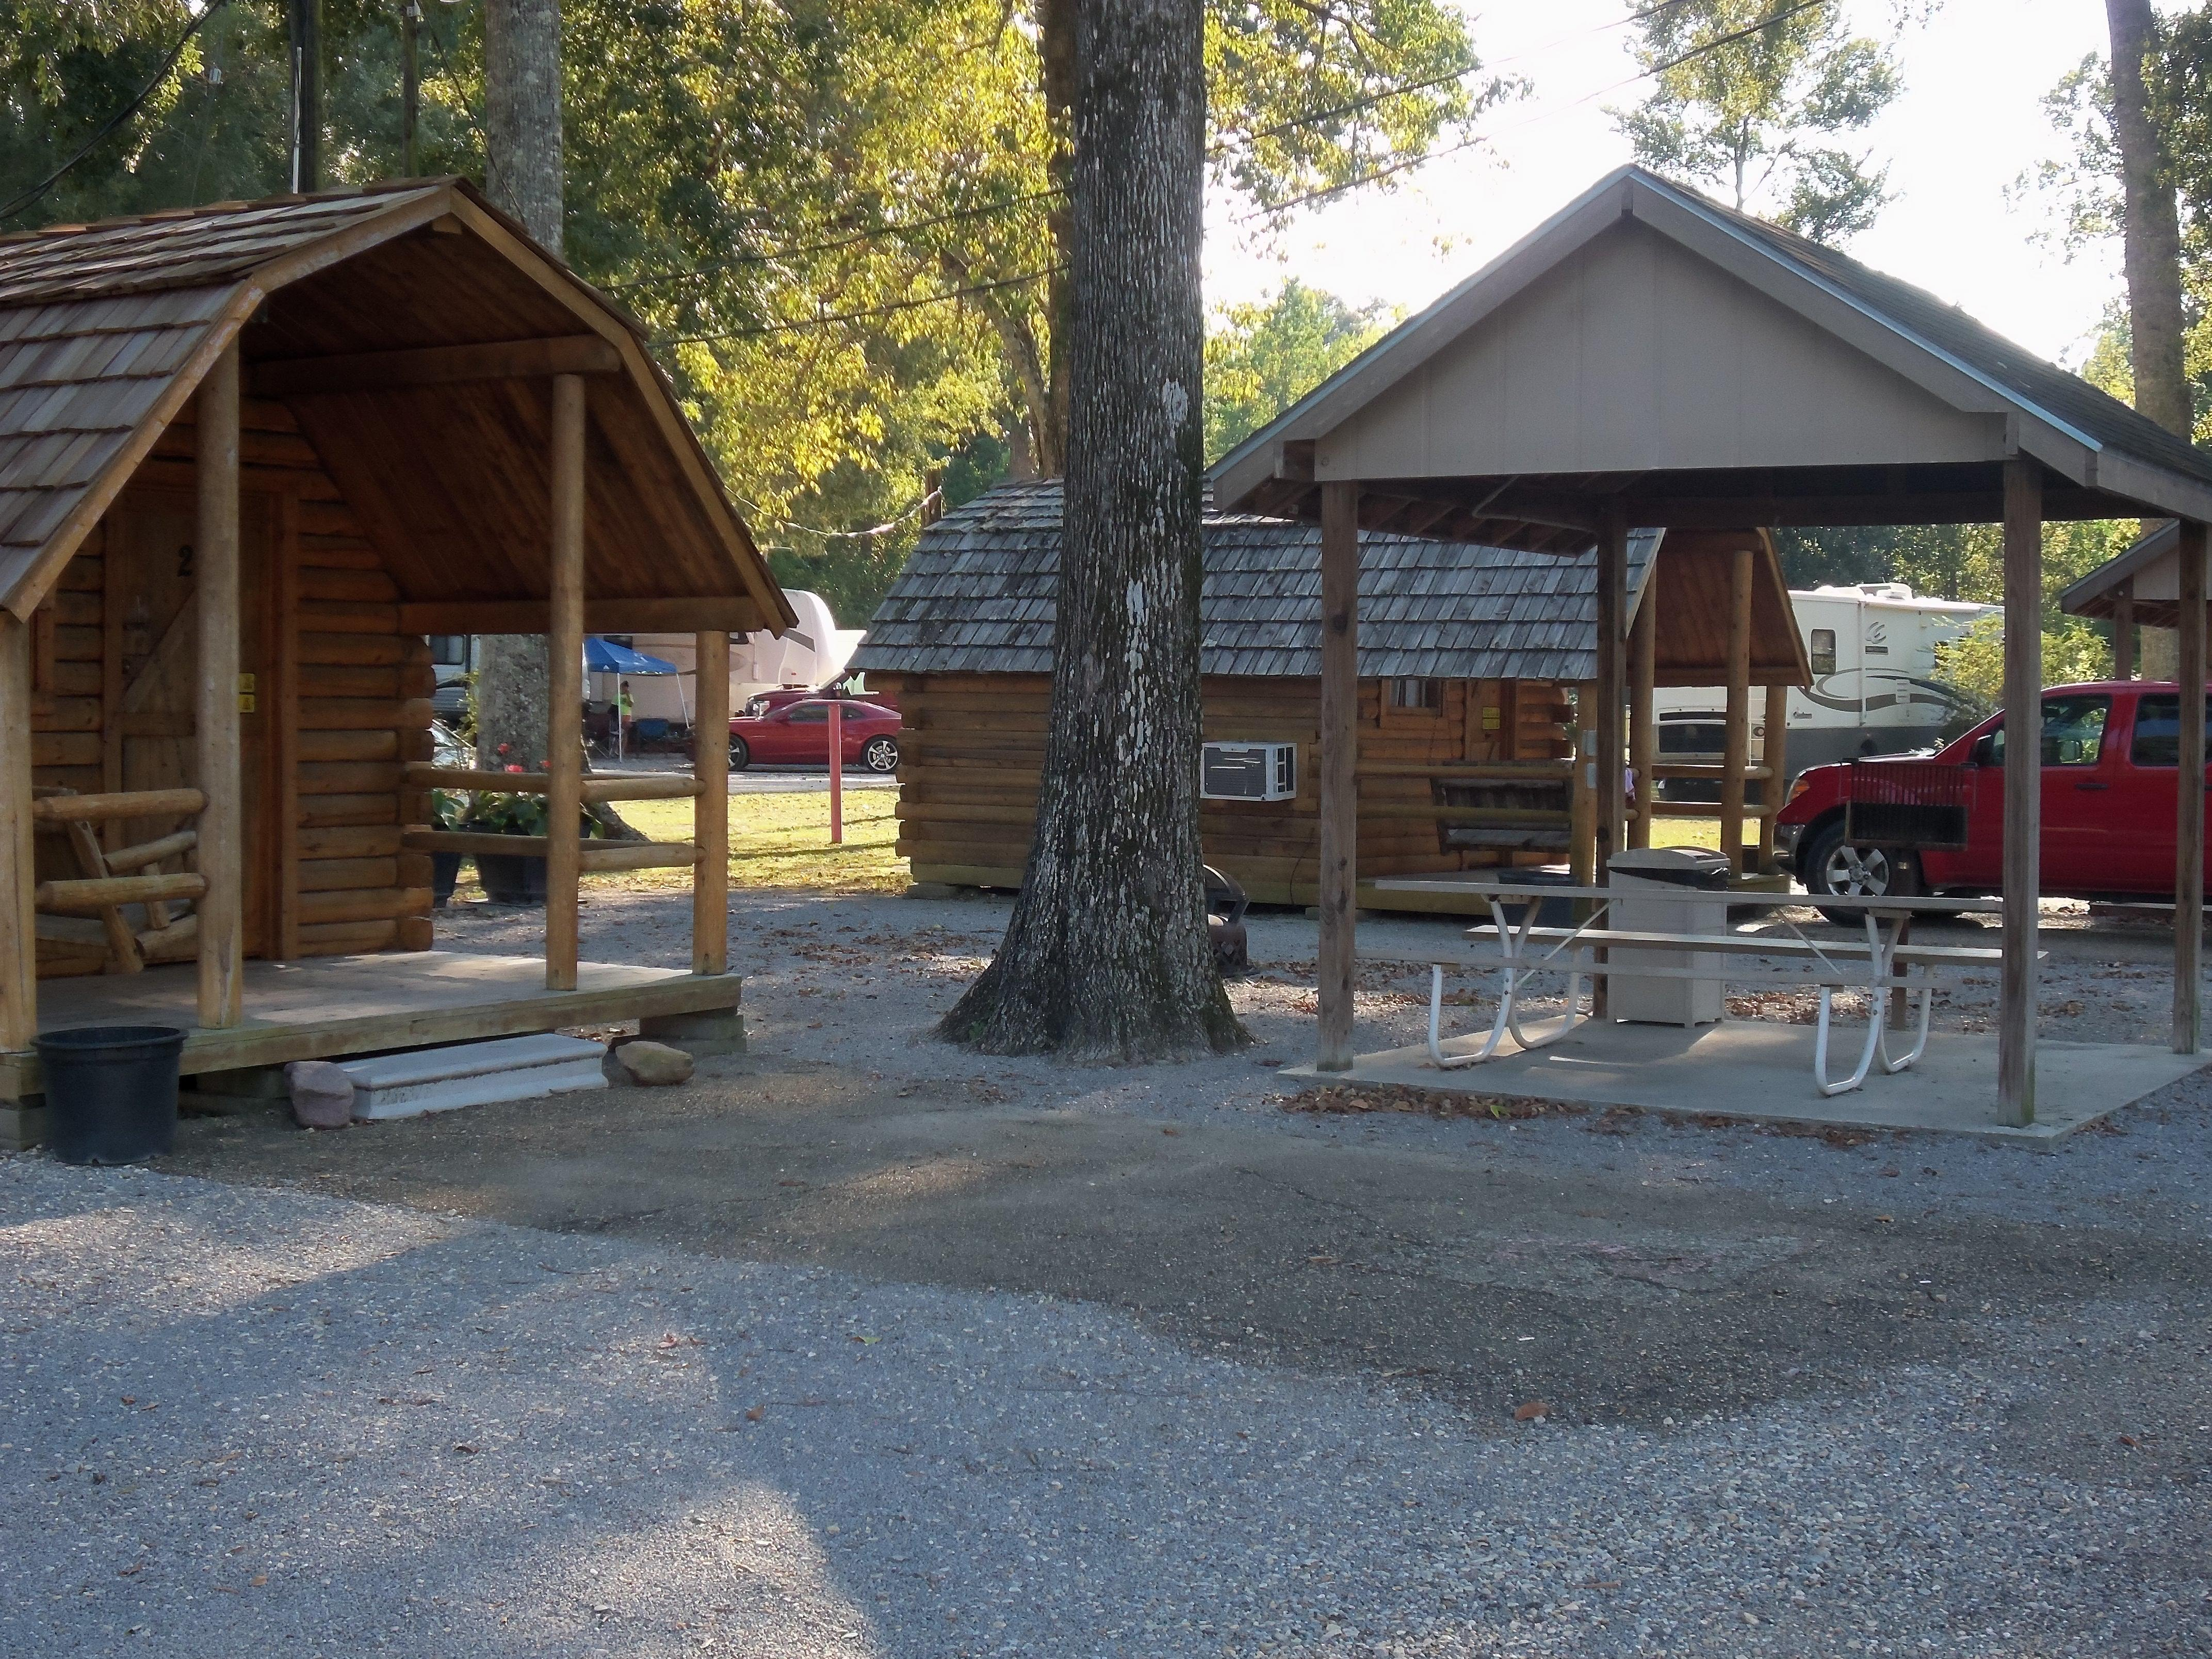 Baton Rouge KOA Holiday image 15